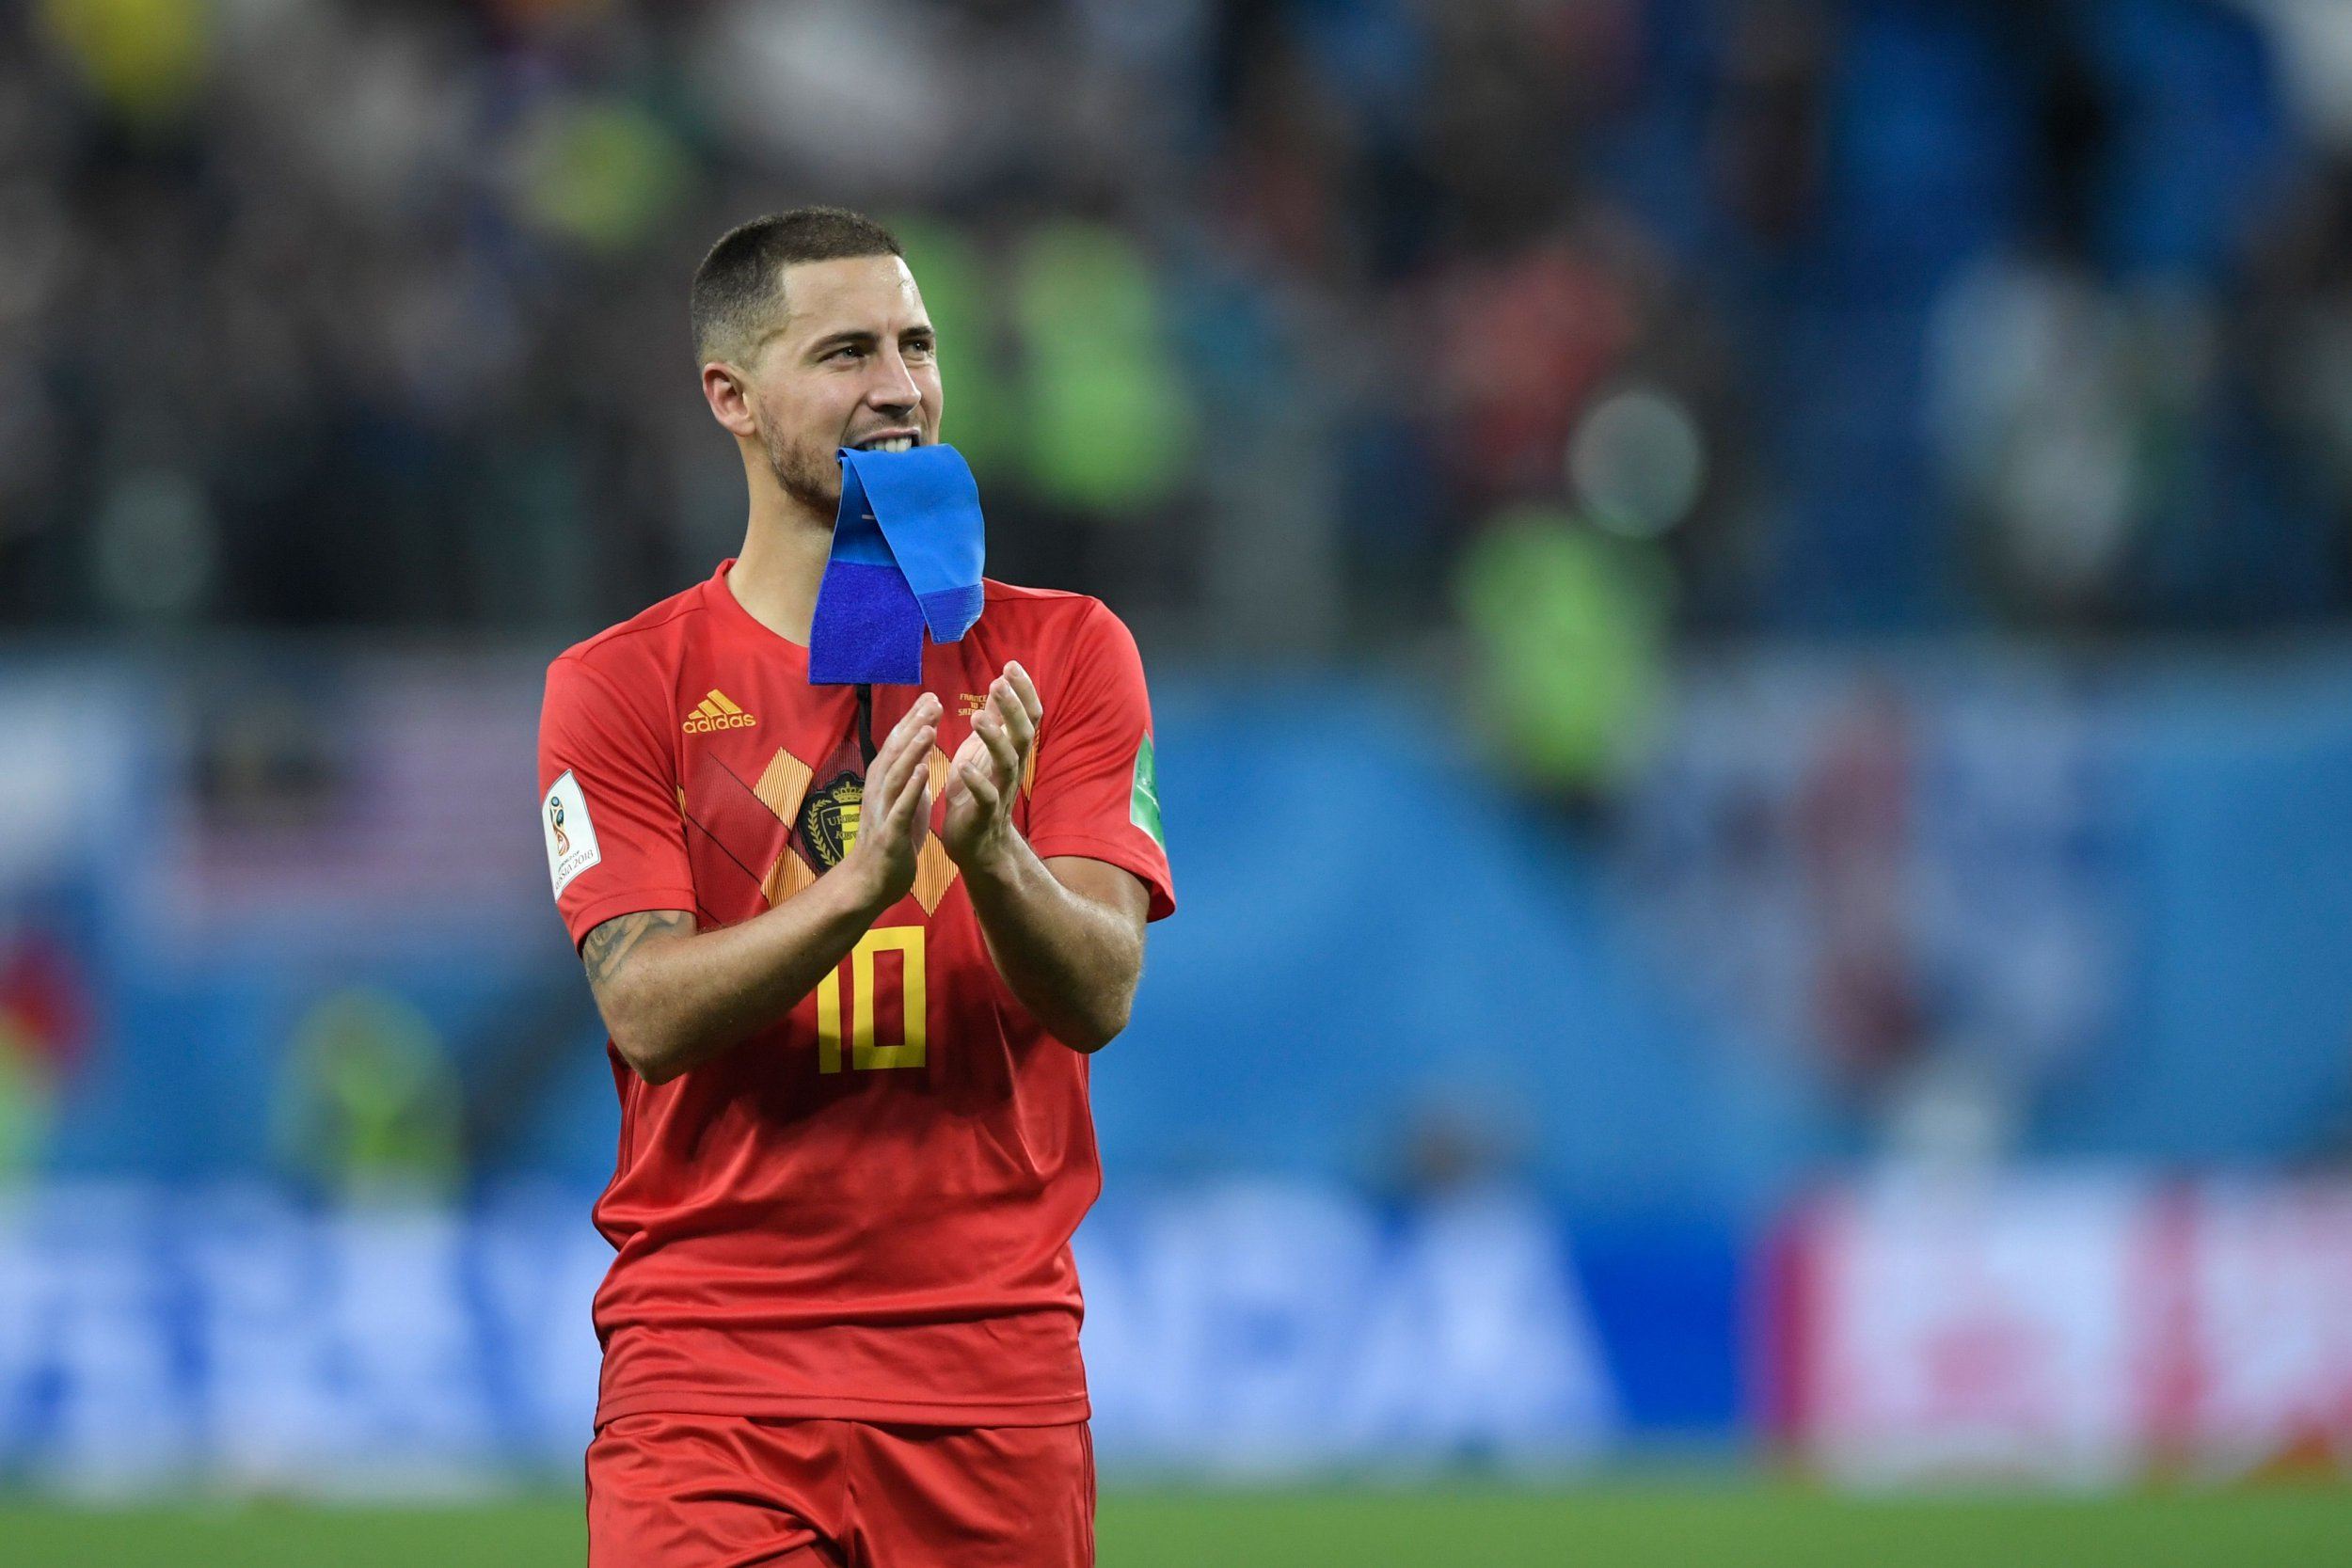 Belgium's forward Eden Hazard greets the fans after the Russia 2018 World Cup semi-final football match between France and Belgium at the Saint Petersburg Stadium in Saint Petersburg on July 10, 2018. France reached the World Cup final on Tuesday after a second-half header from Samuel Umtiti gave them a 1-0 win against Belgium. / AFP PHOTO / GABRIEL BOUYS / RESTRICTED TO EDITORIAL USE - NO MOBILE PUSH ALERTS/DOWNLOADS GABRIEL BOUYS/AFP/Getty Images